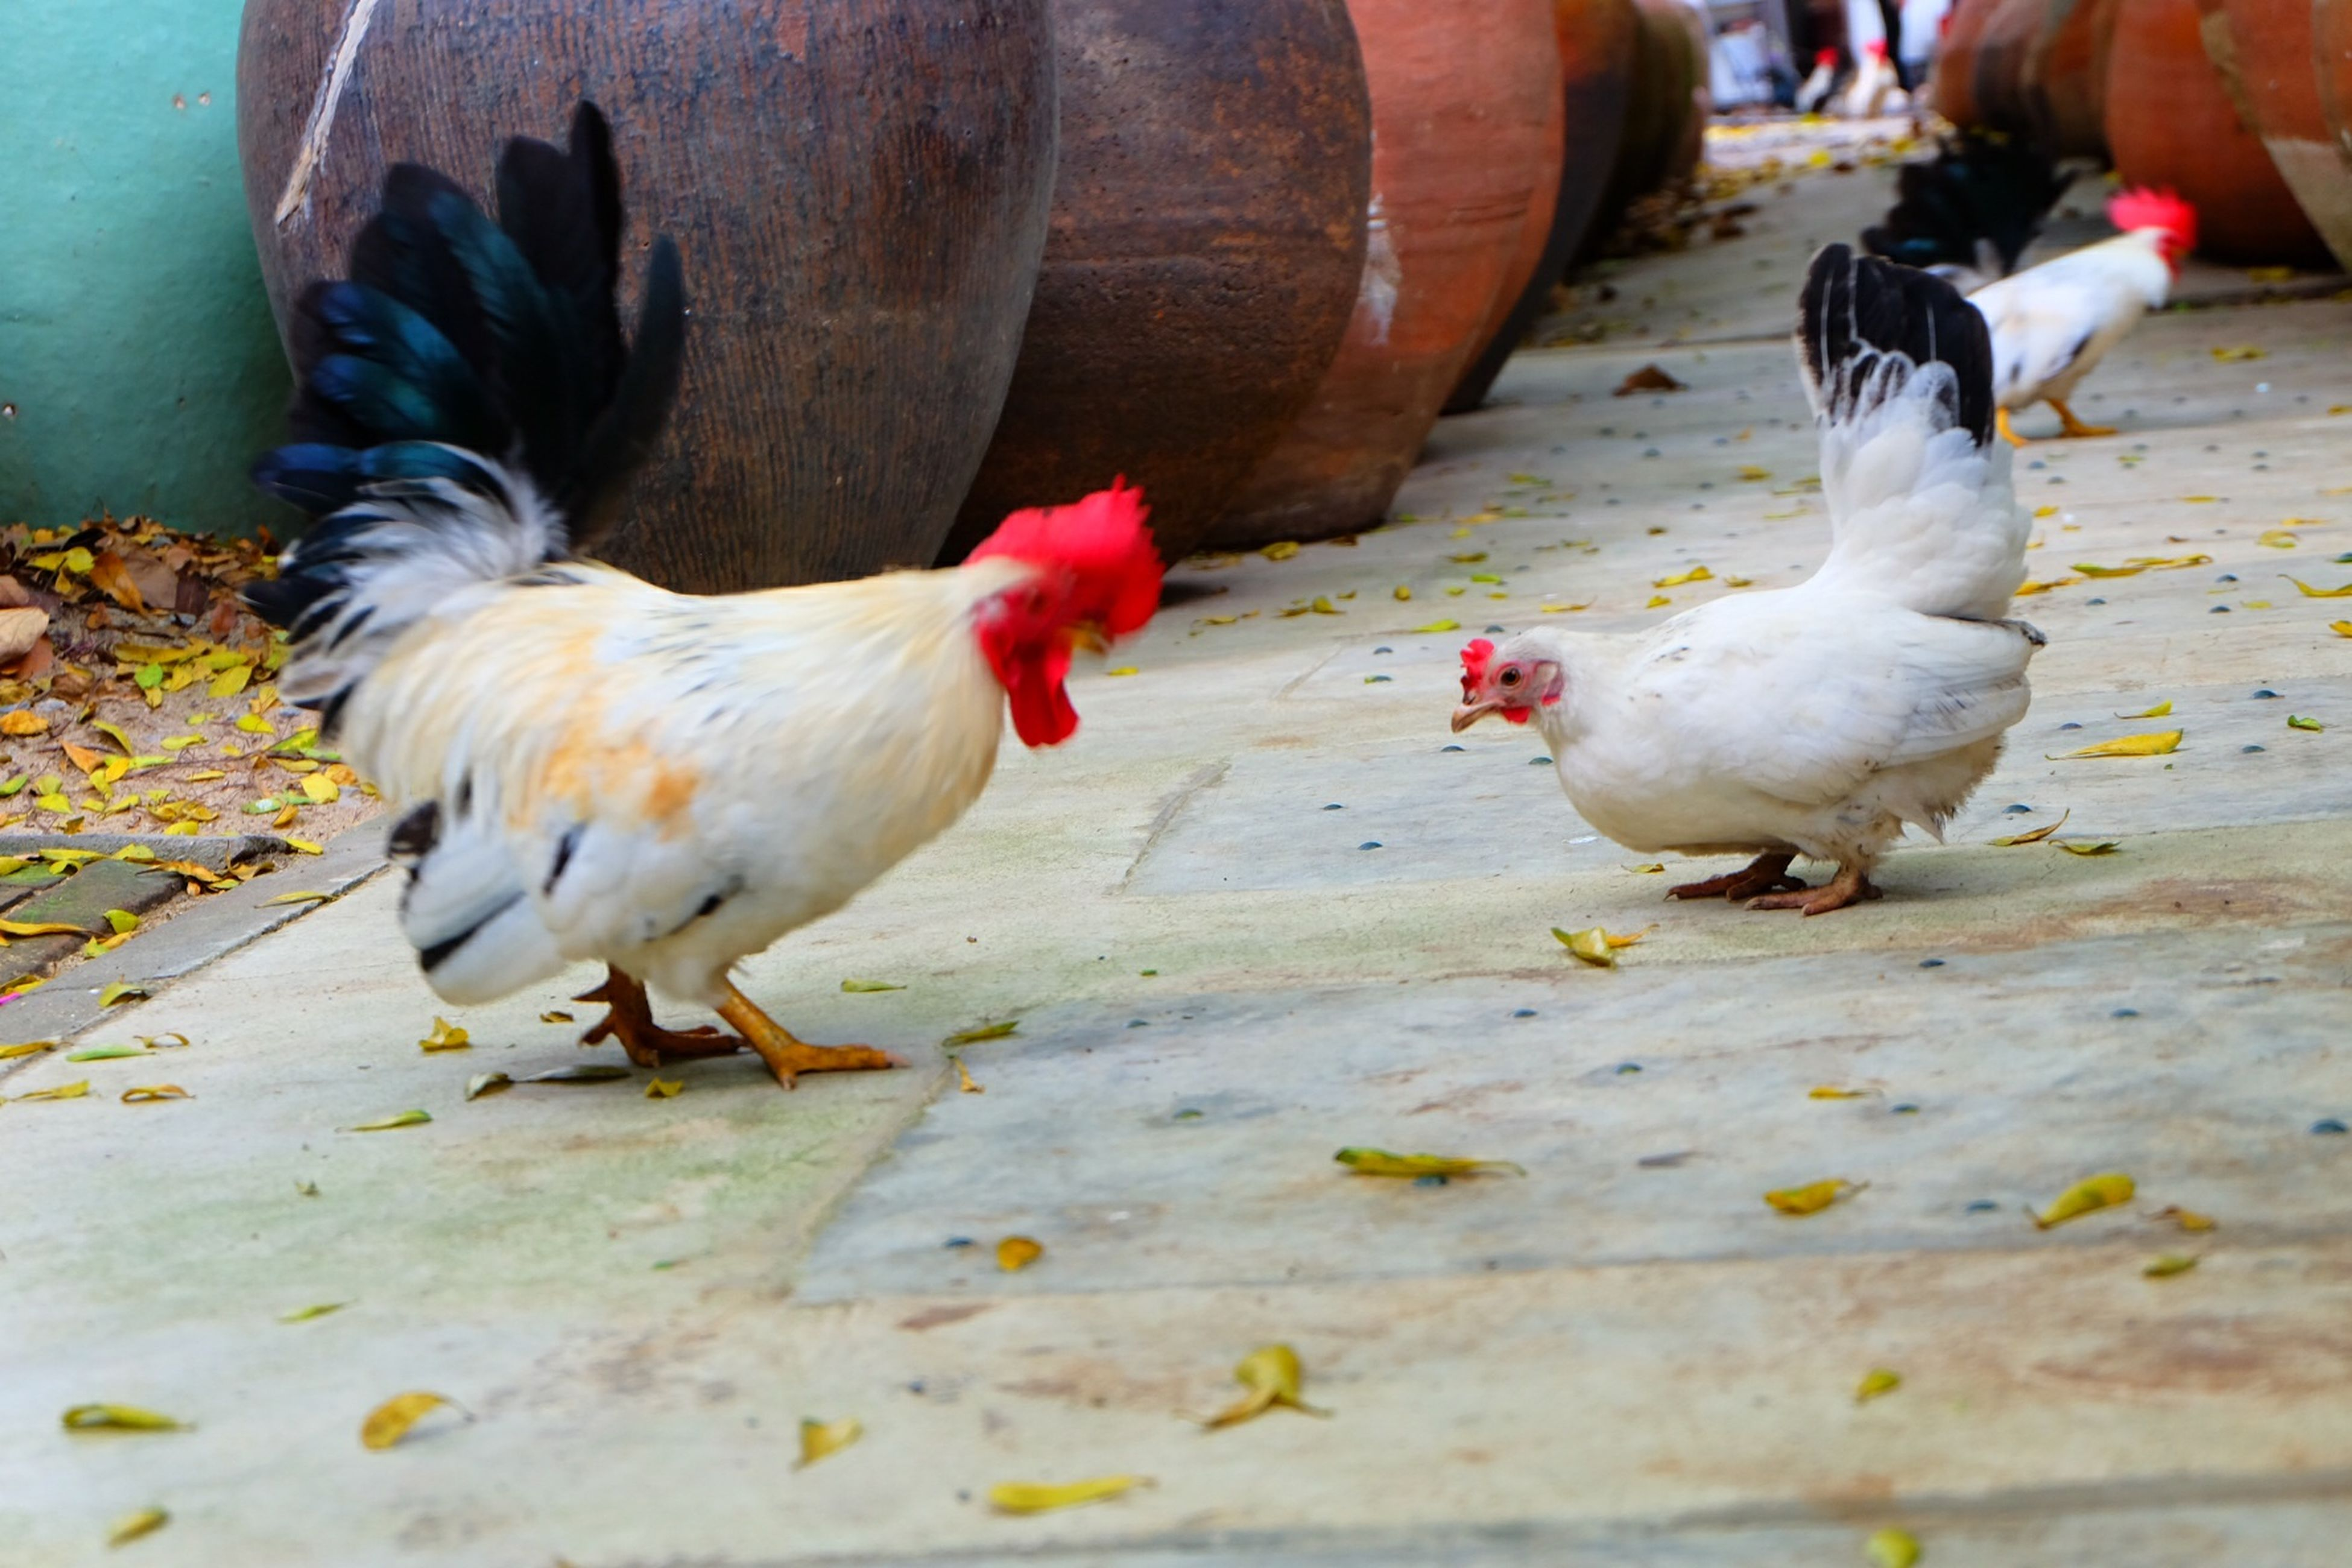 animal themes, bird, animals in the wild, wildlife, two animals, togetherness, three animals, medium group of animals, domestic animals, pigeon, chicken - bird, outdoors, high angle view, full length, street, day, nature, zoology, vertebrate, livestock